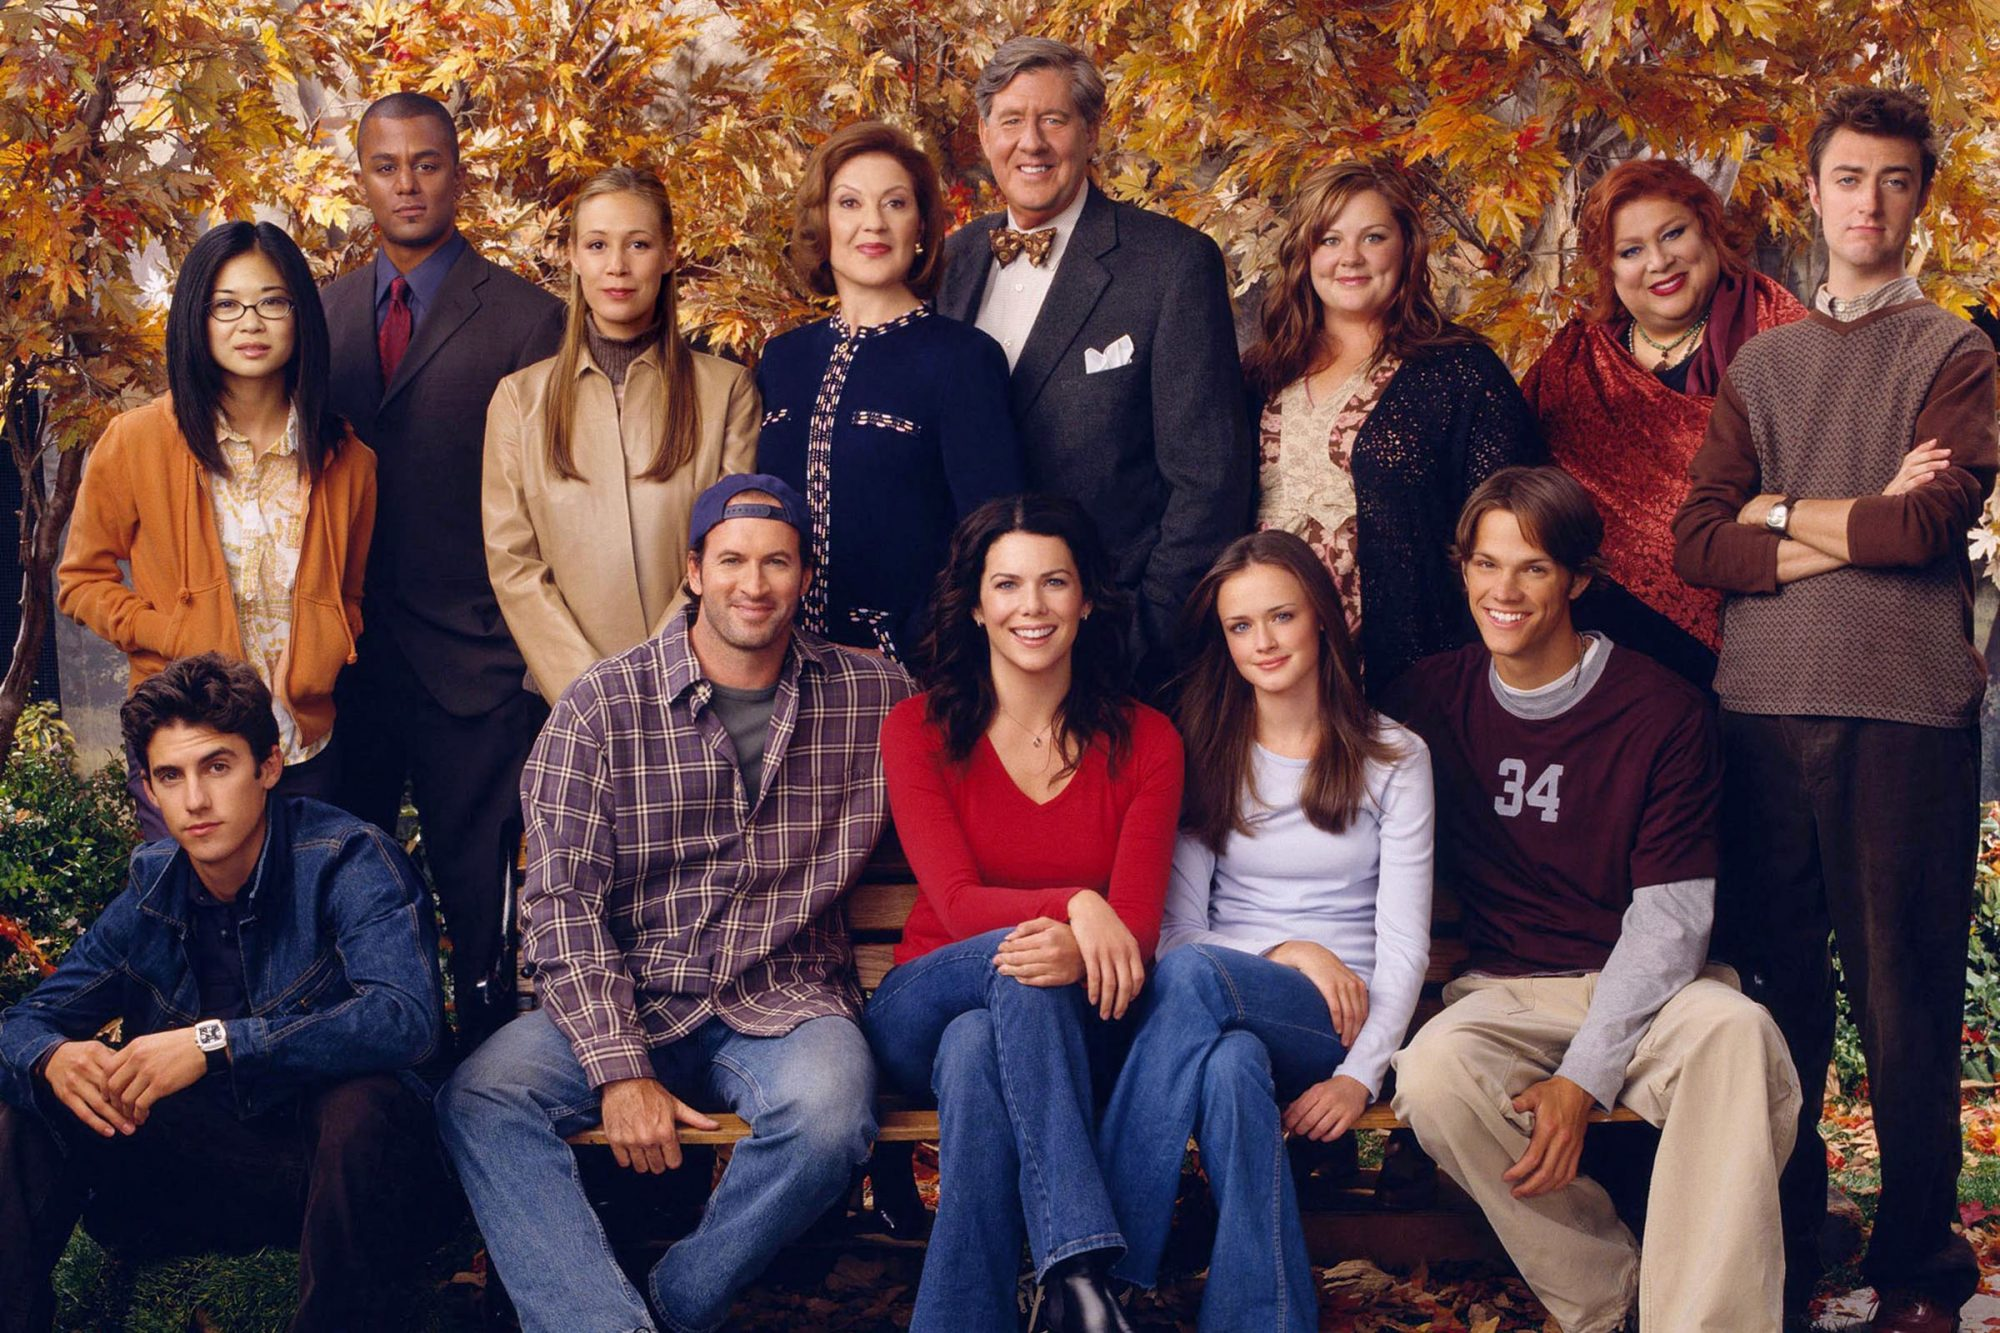 GILMORE GIRLS, (L to R-back row):  Keiko Angena, Yanic Truesdale, Liza Weil, Kelly Bishop, Edward He